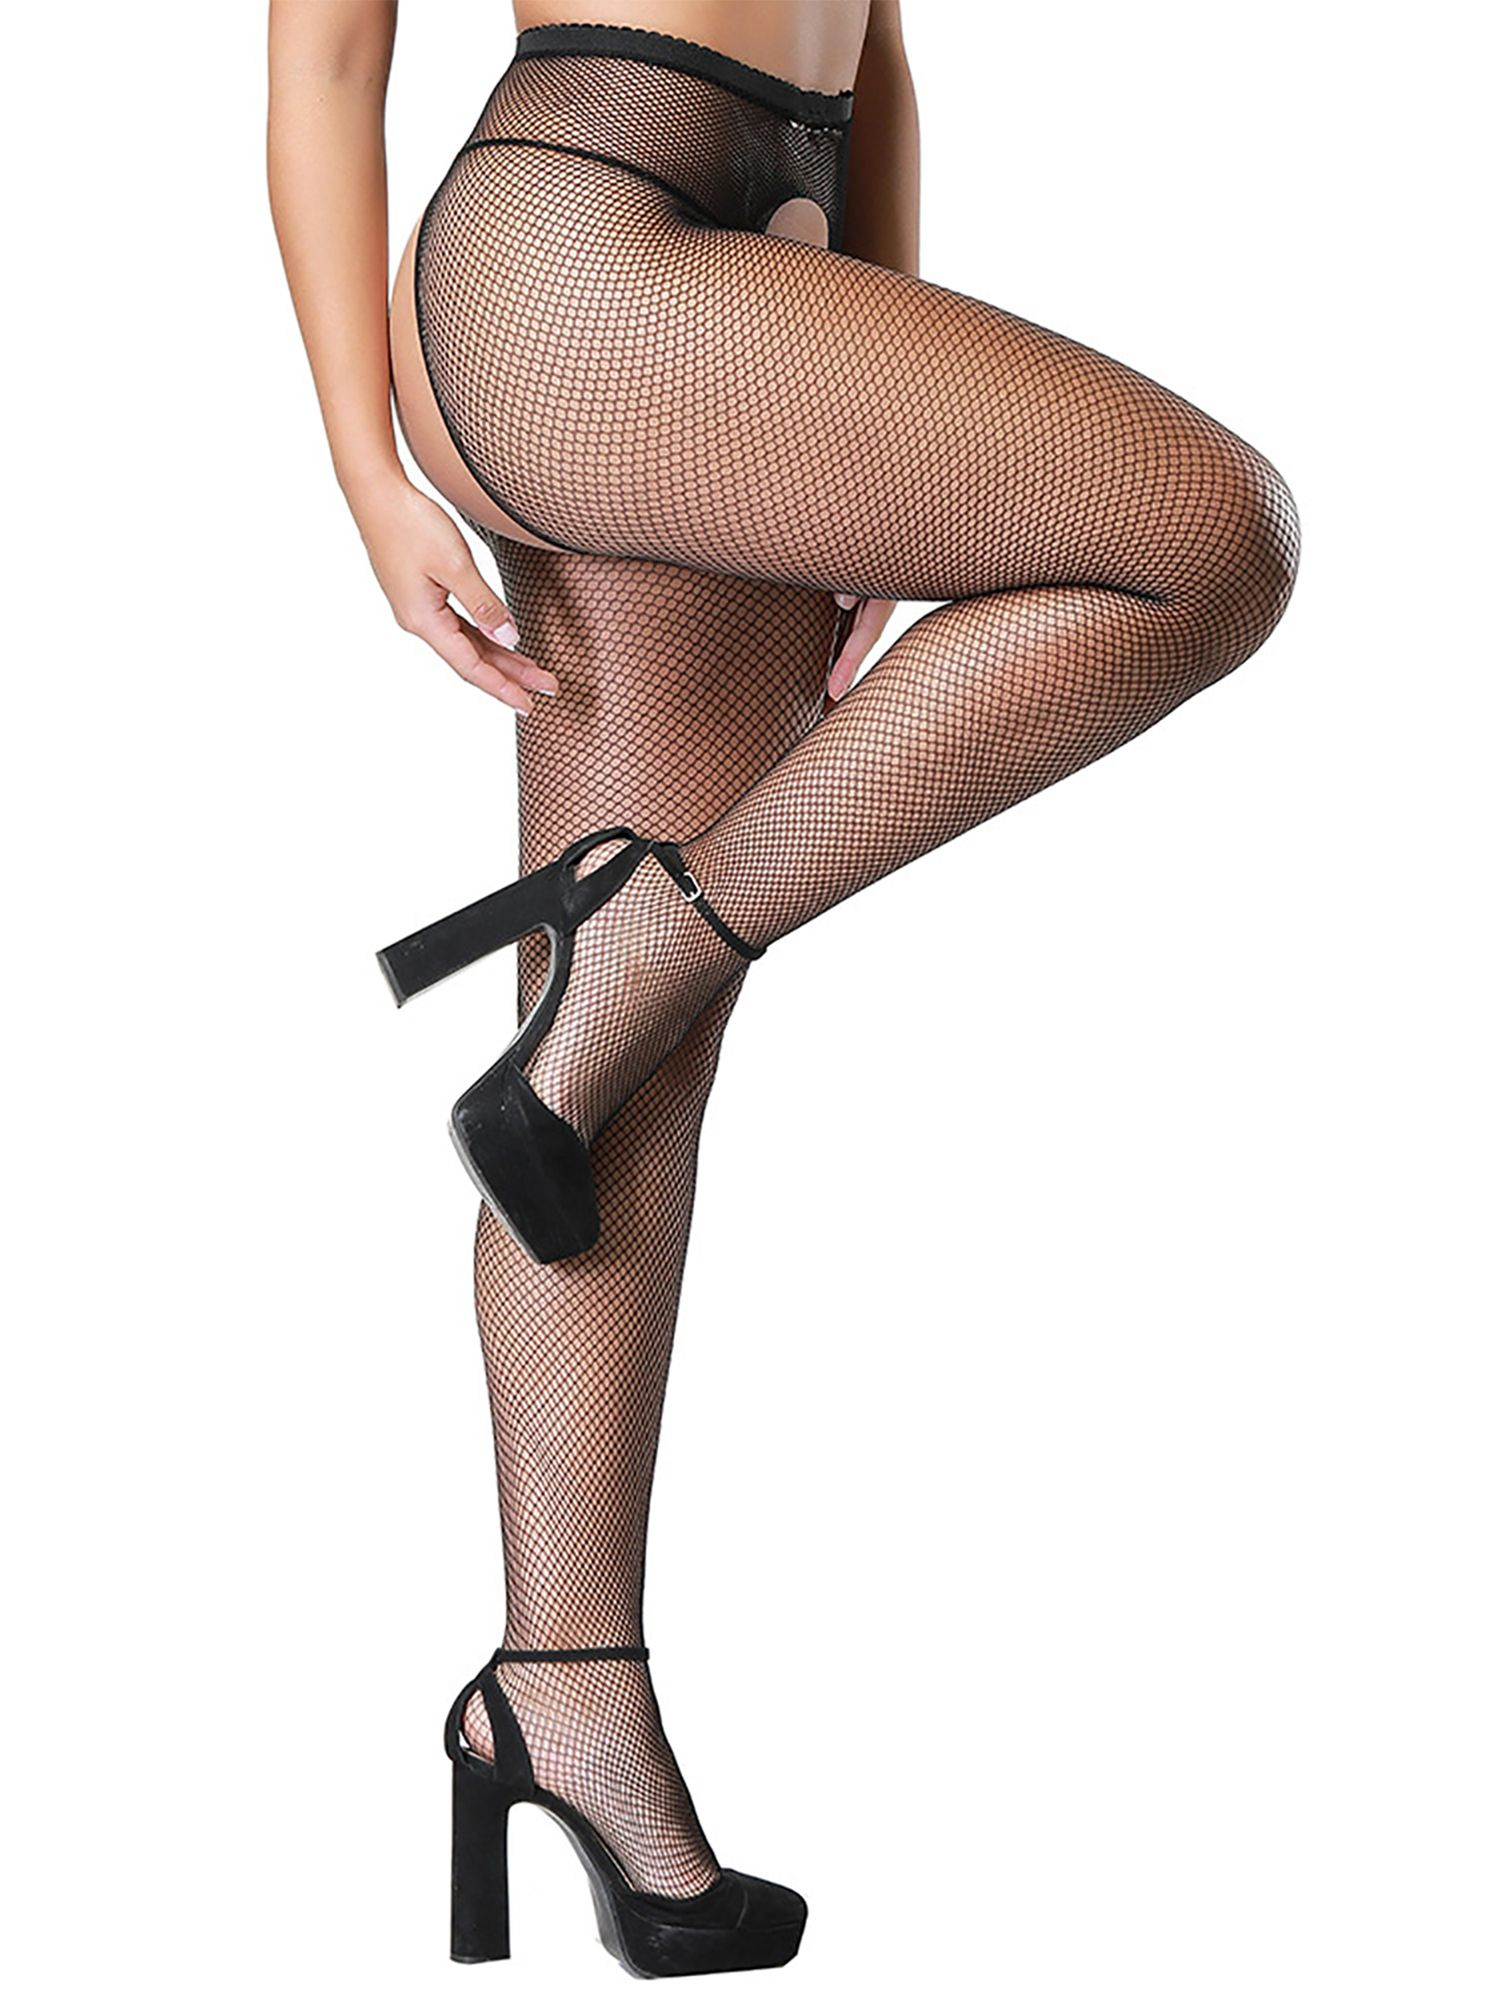 LEIGH: Wool crouthless pantyhose